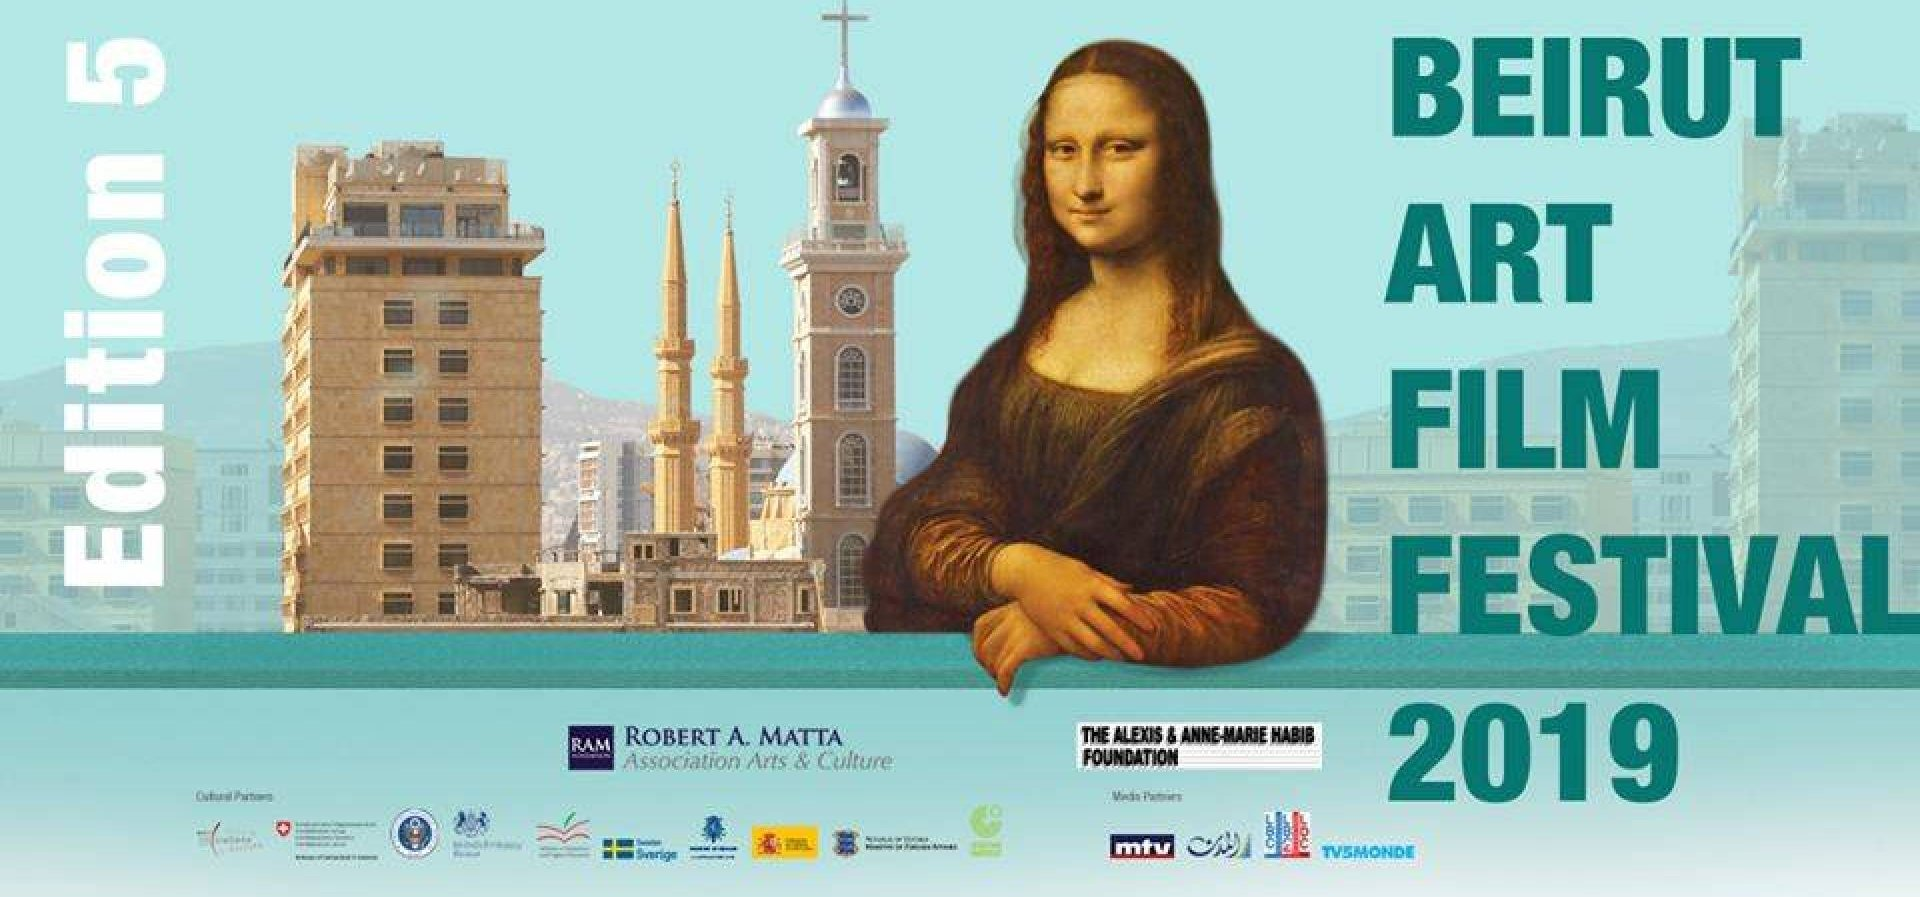 Beirut Art Film Festival reinforces the role of film in affecting change